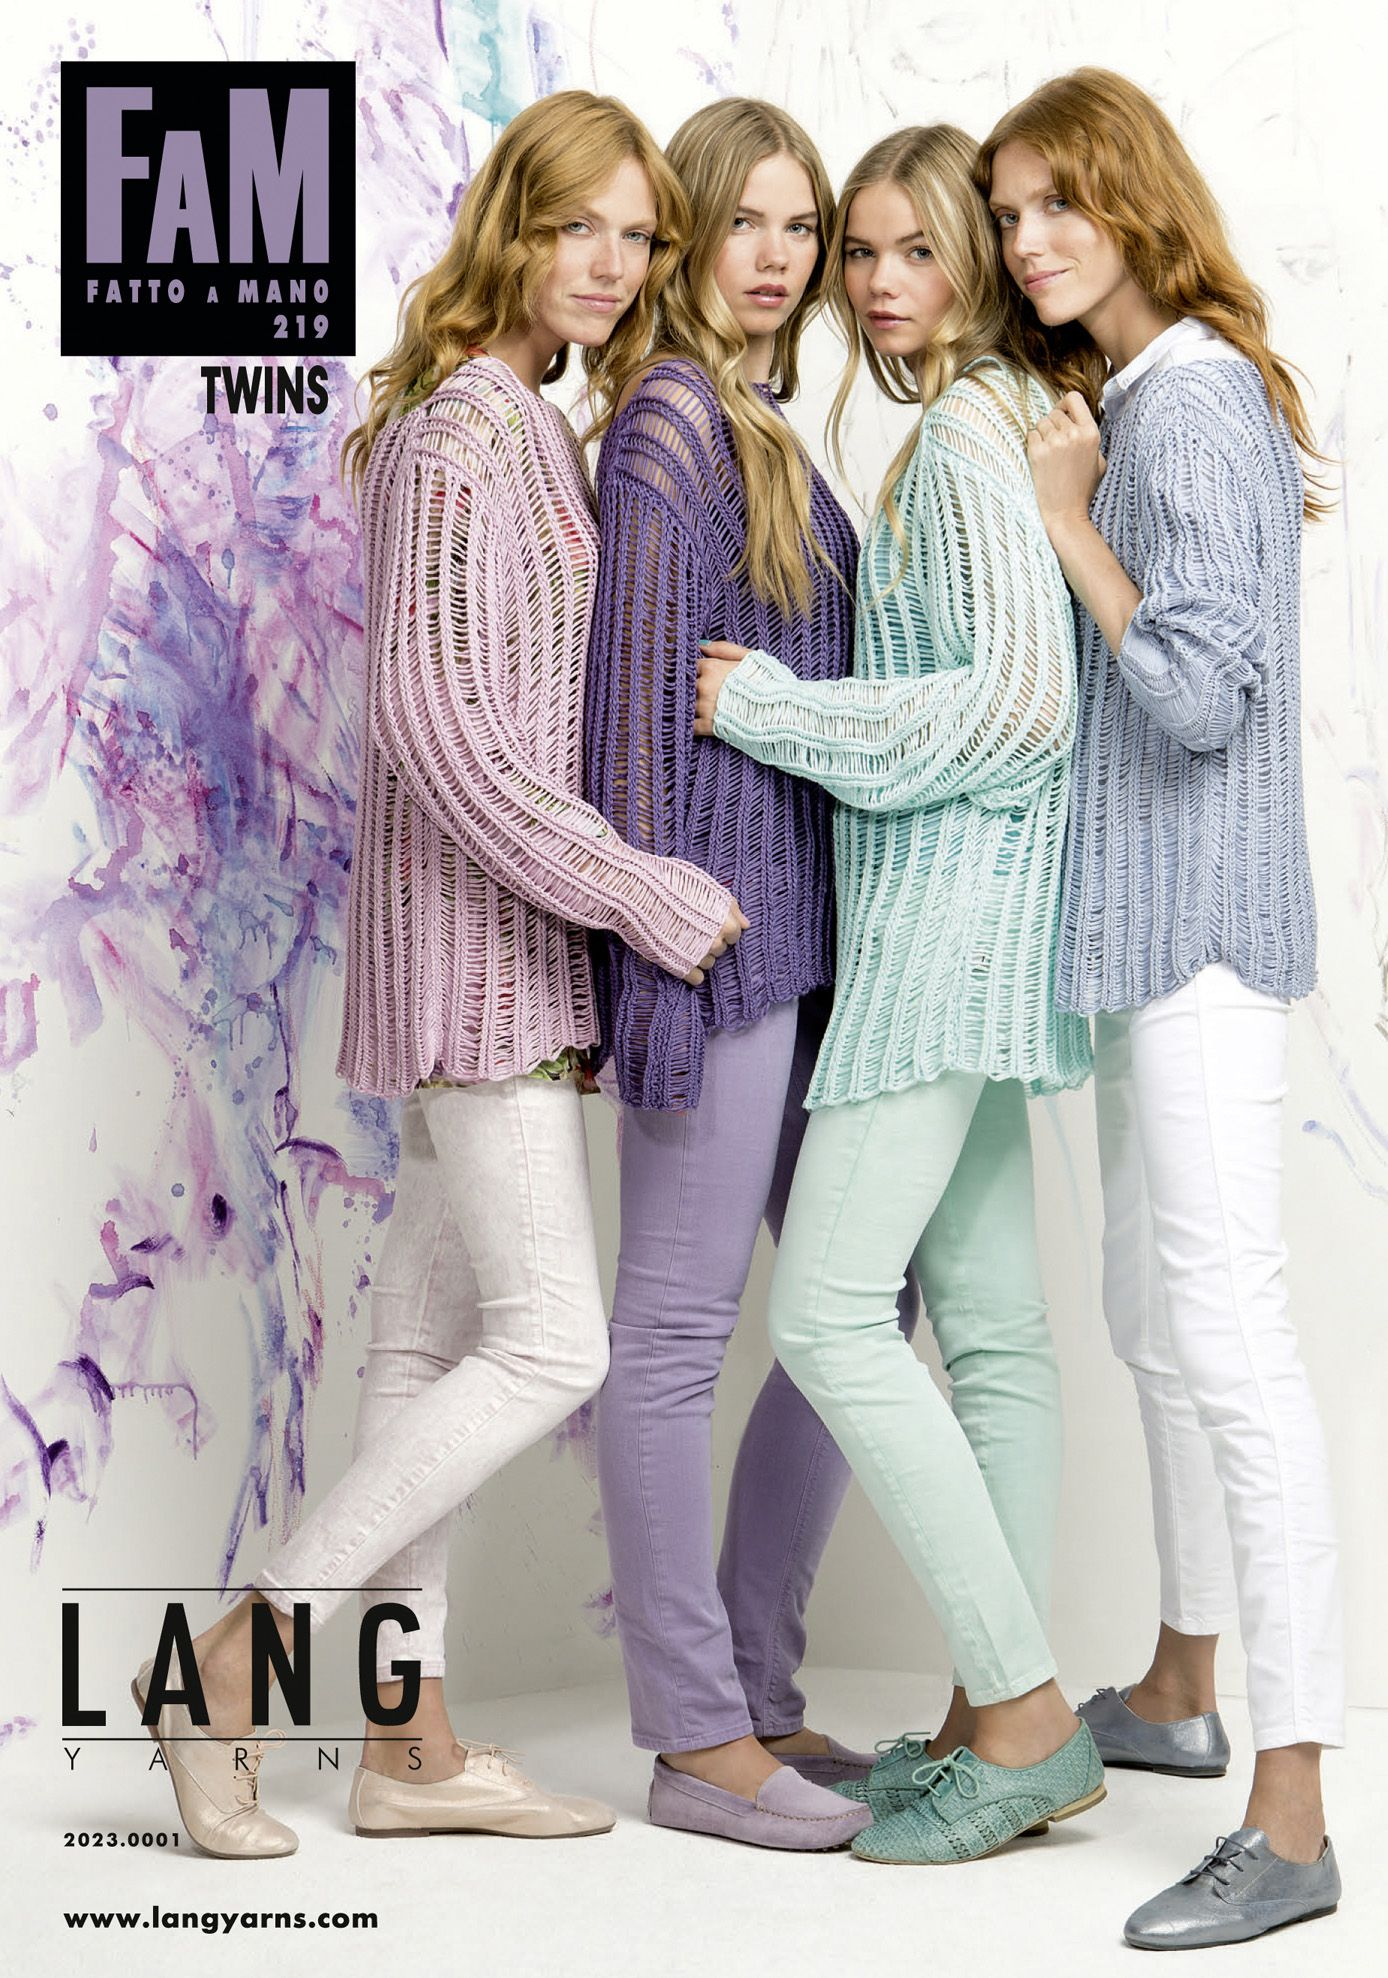 LANGYARNS FATTO A MANO 219 - TWINS